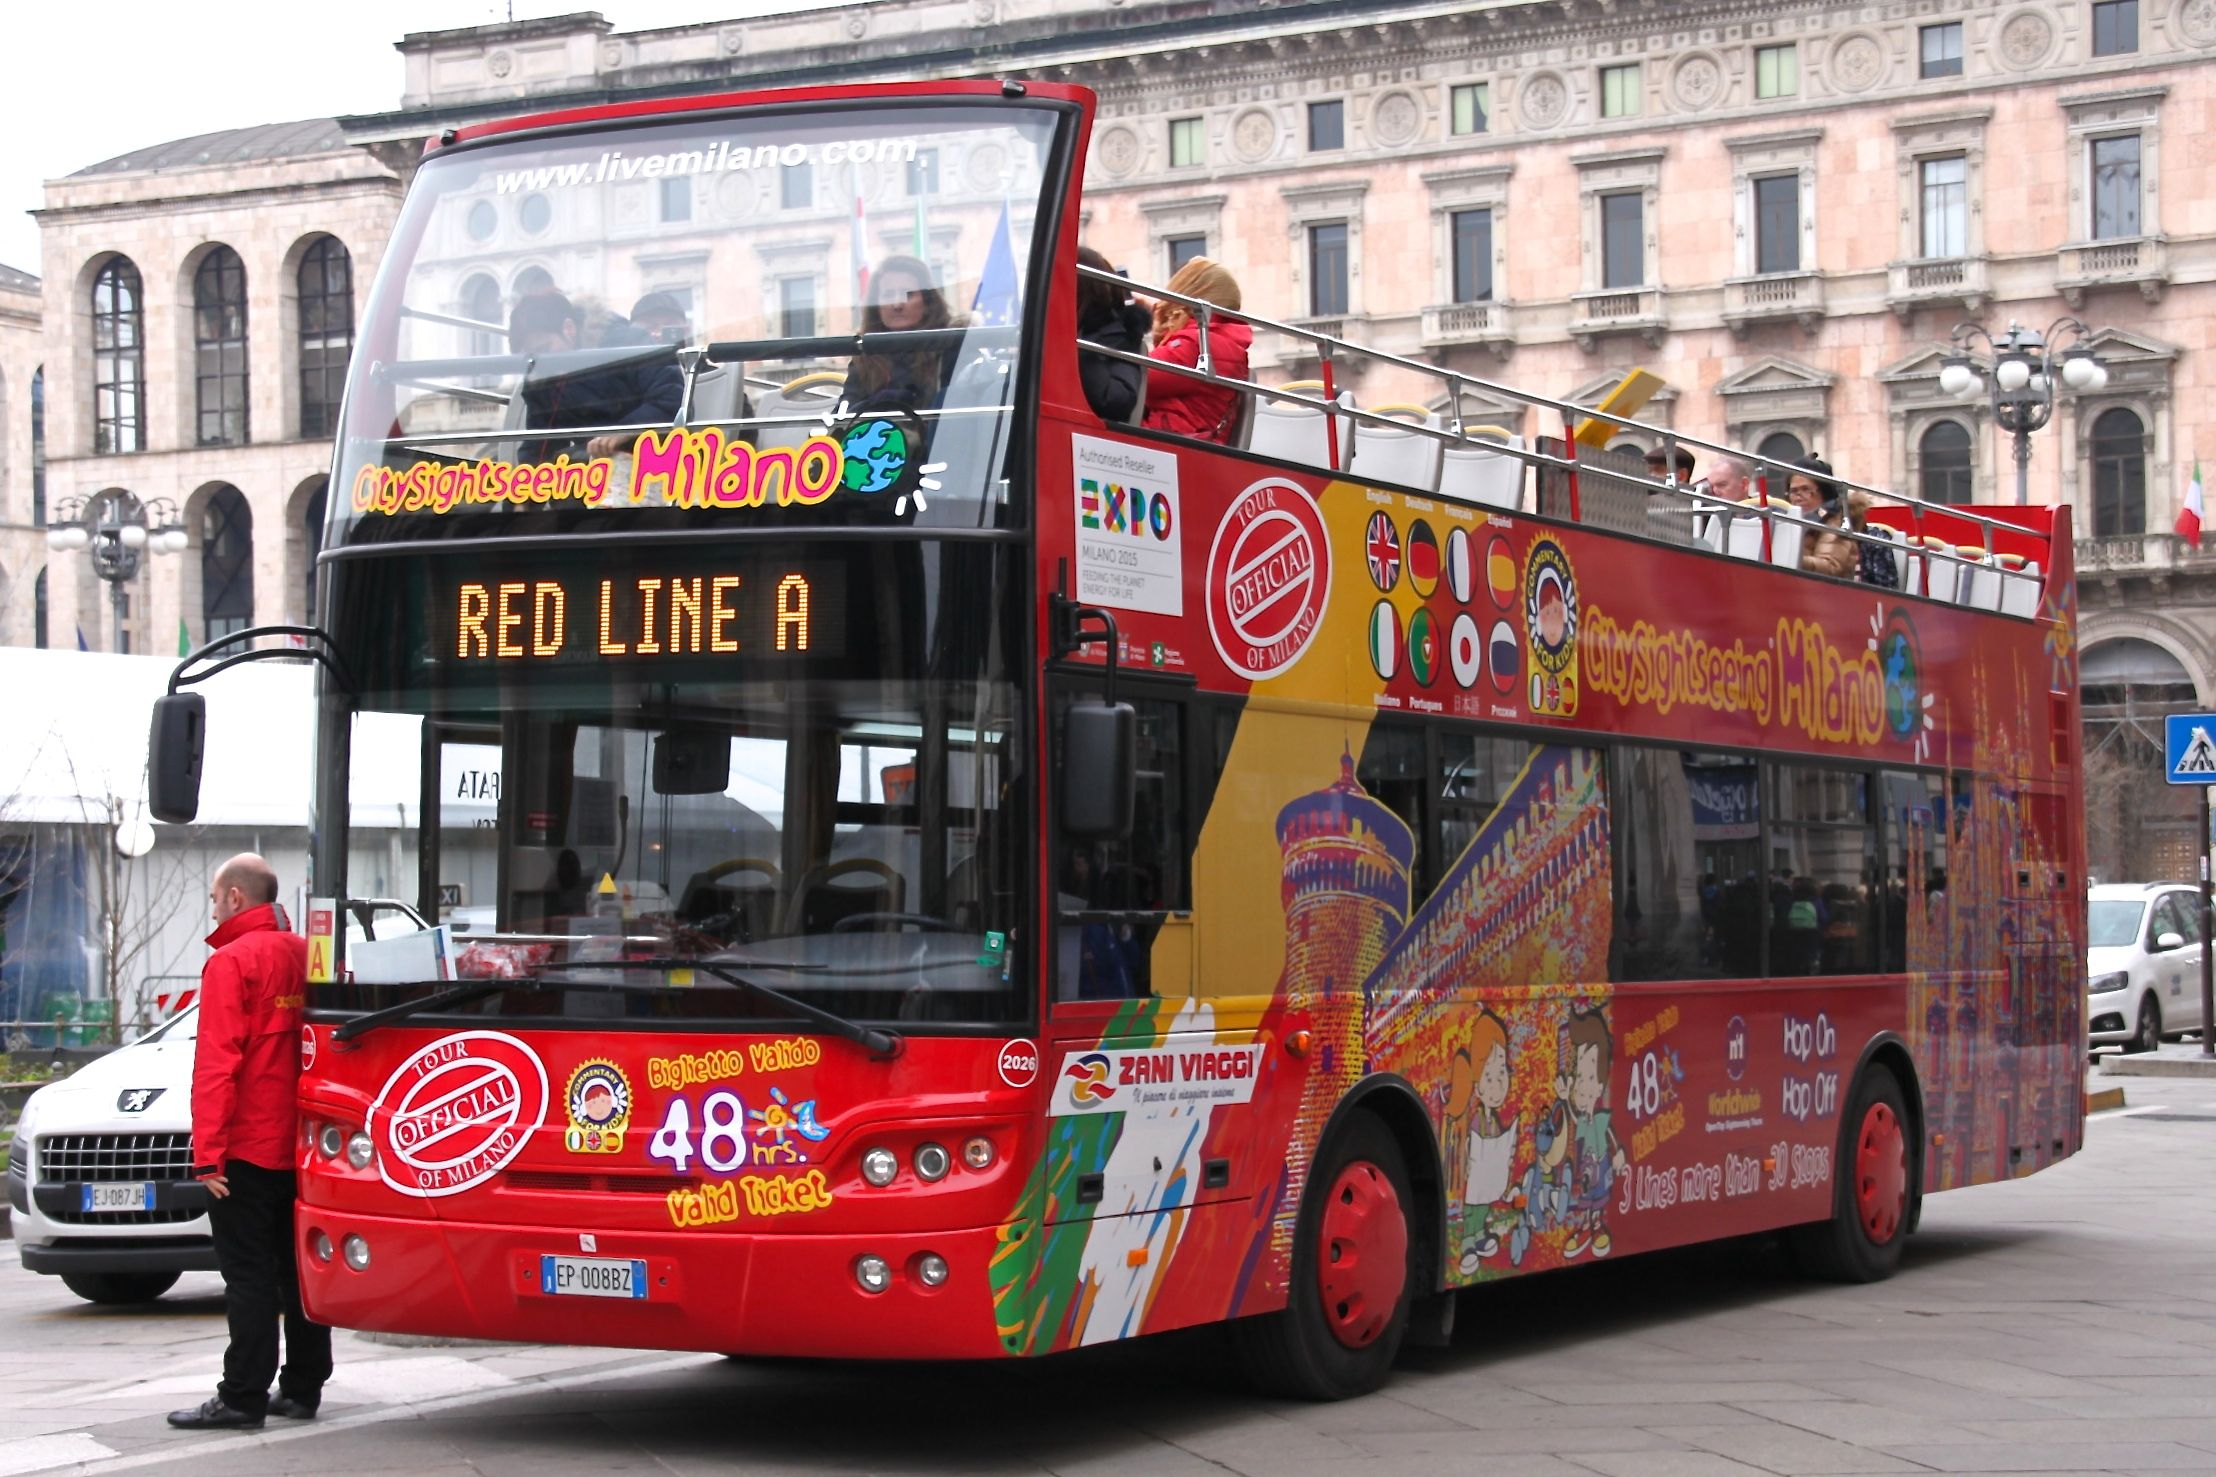 Photo of a City Sight Seeing bus in Milan